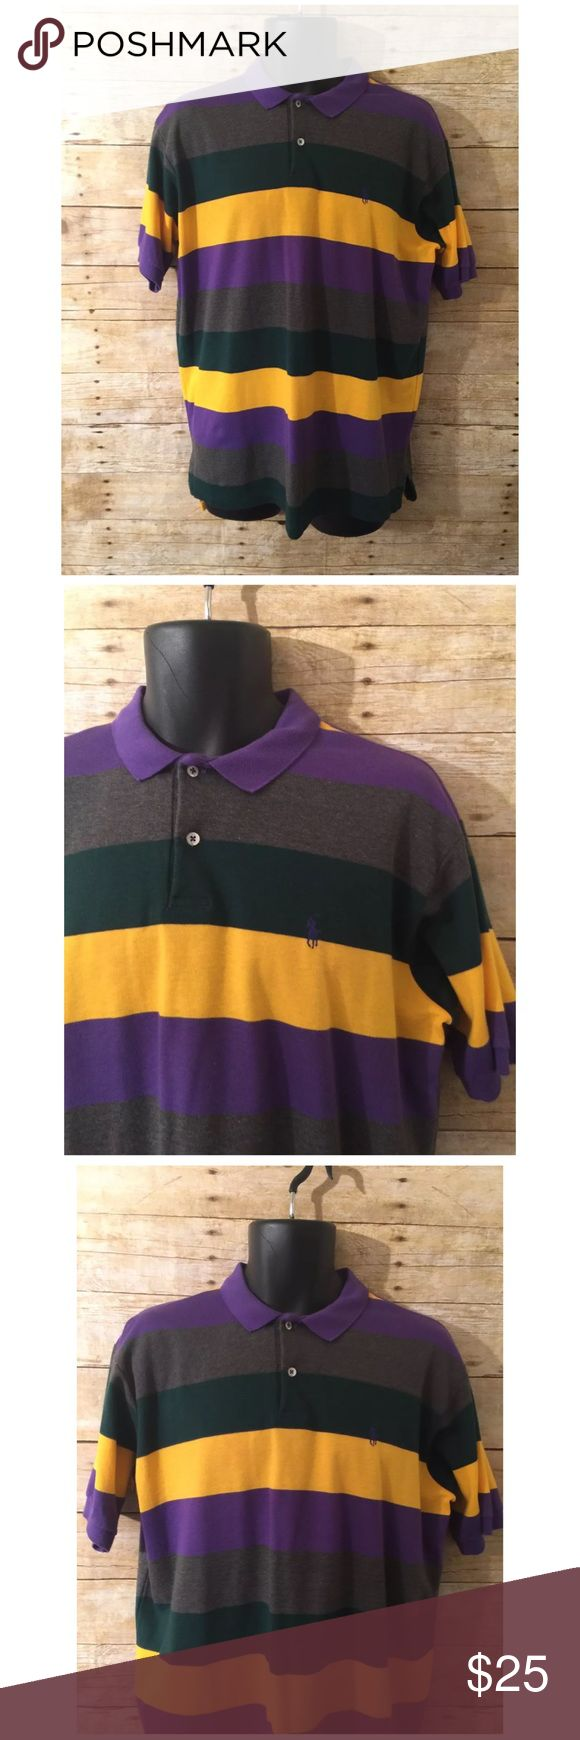 Ralph Lauren Purple & Yellow Striped Polo Shirt Polo shirt is in good condition, no stains or flaws   Size: X-Large Polo by Ralph Lauren Shirts Polos